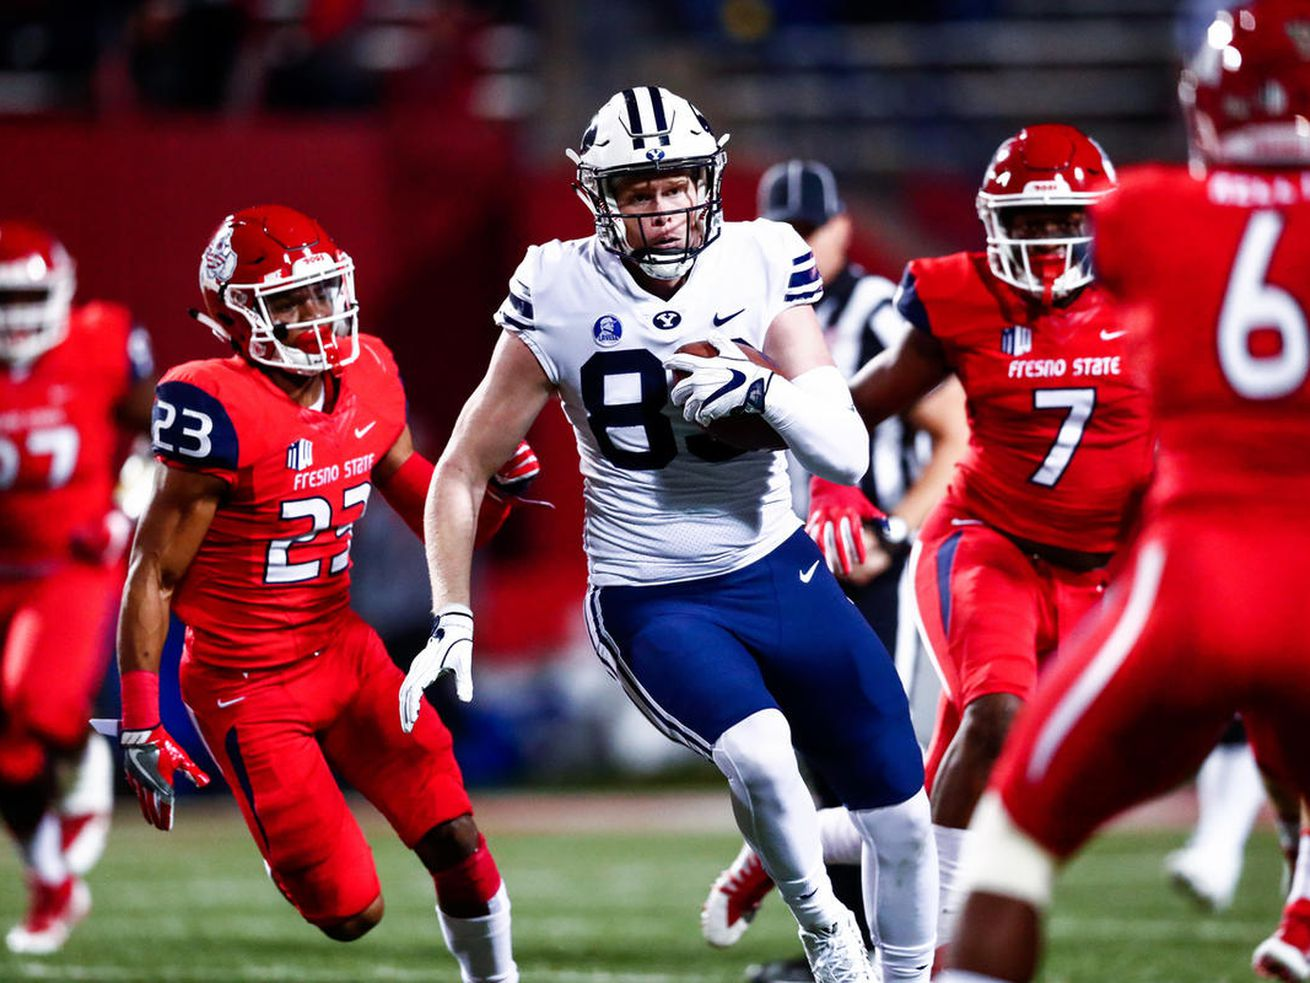 BYU tight end Matt Bushman says he will decide after Hawaii Bowl if he will forgo senior season for the NFL draft